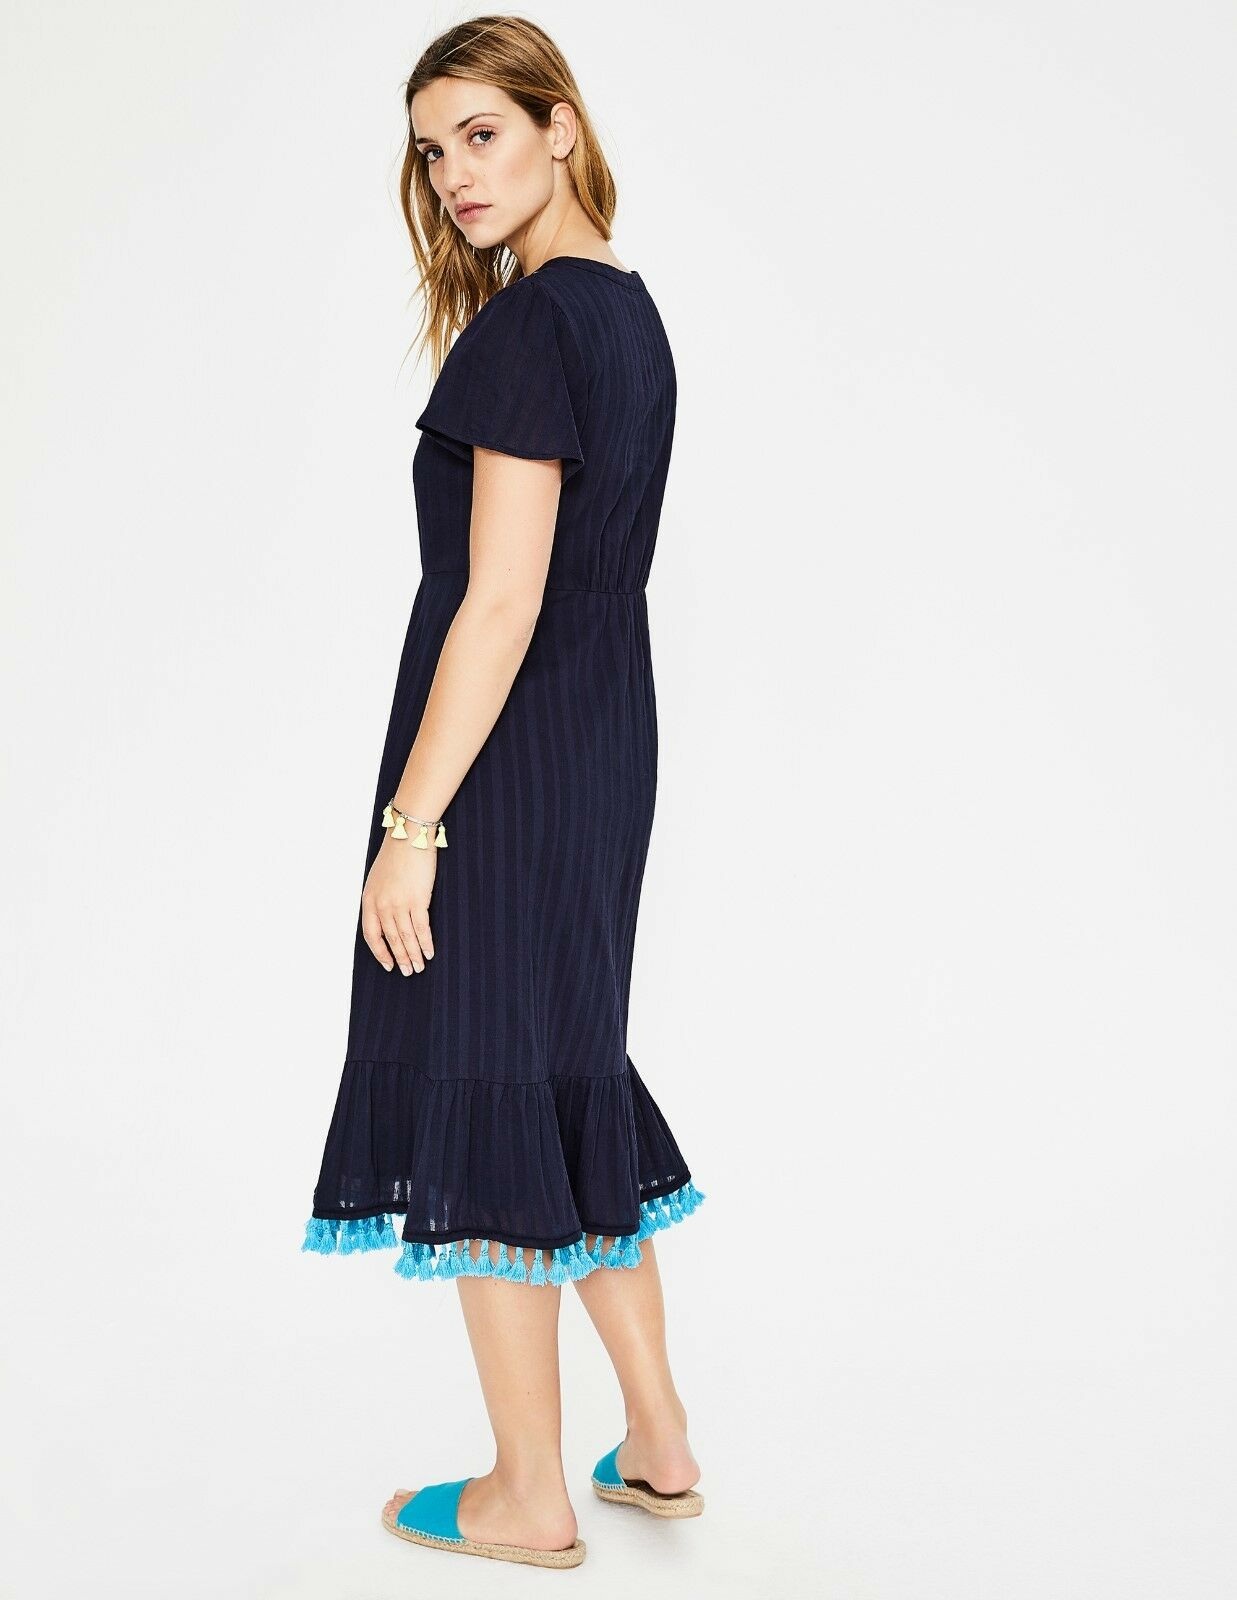 Boden Boden Boden Evelyn Embroidered Boho Dress Navy Size 8 Regular RRP f0c6ef